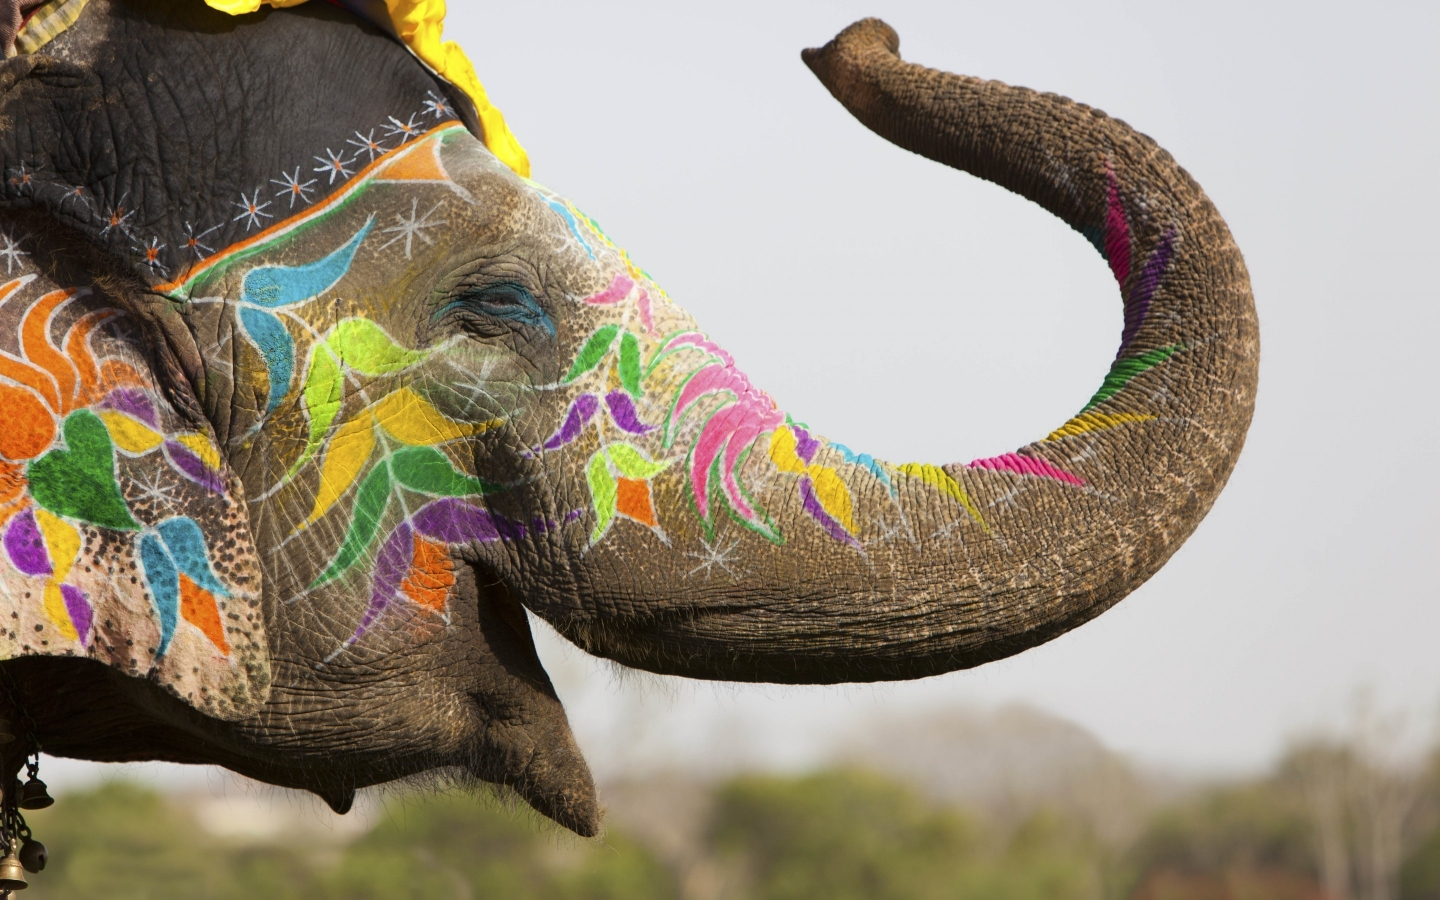 Colored Elephant for 1440 x 900 widescreen resolution